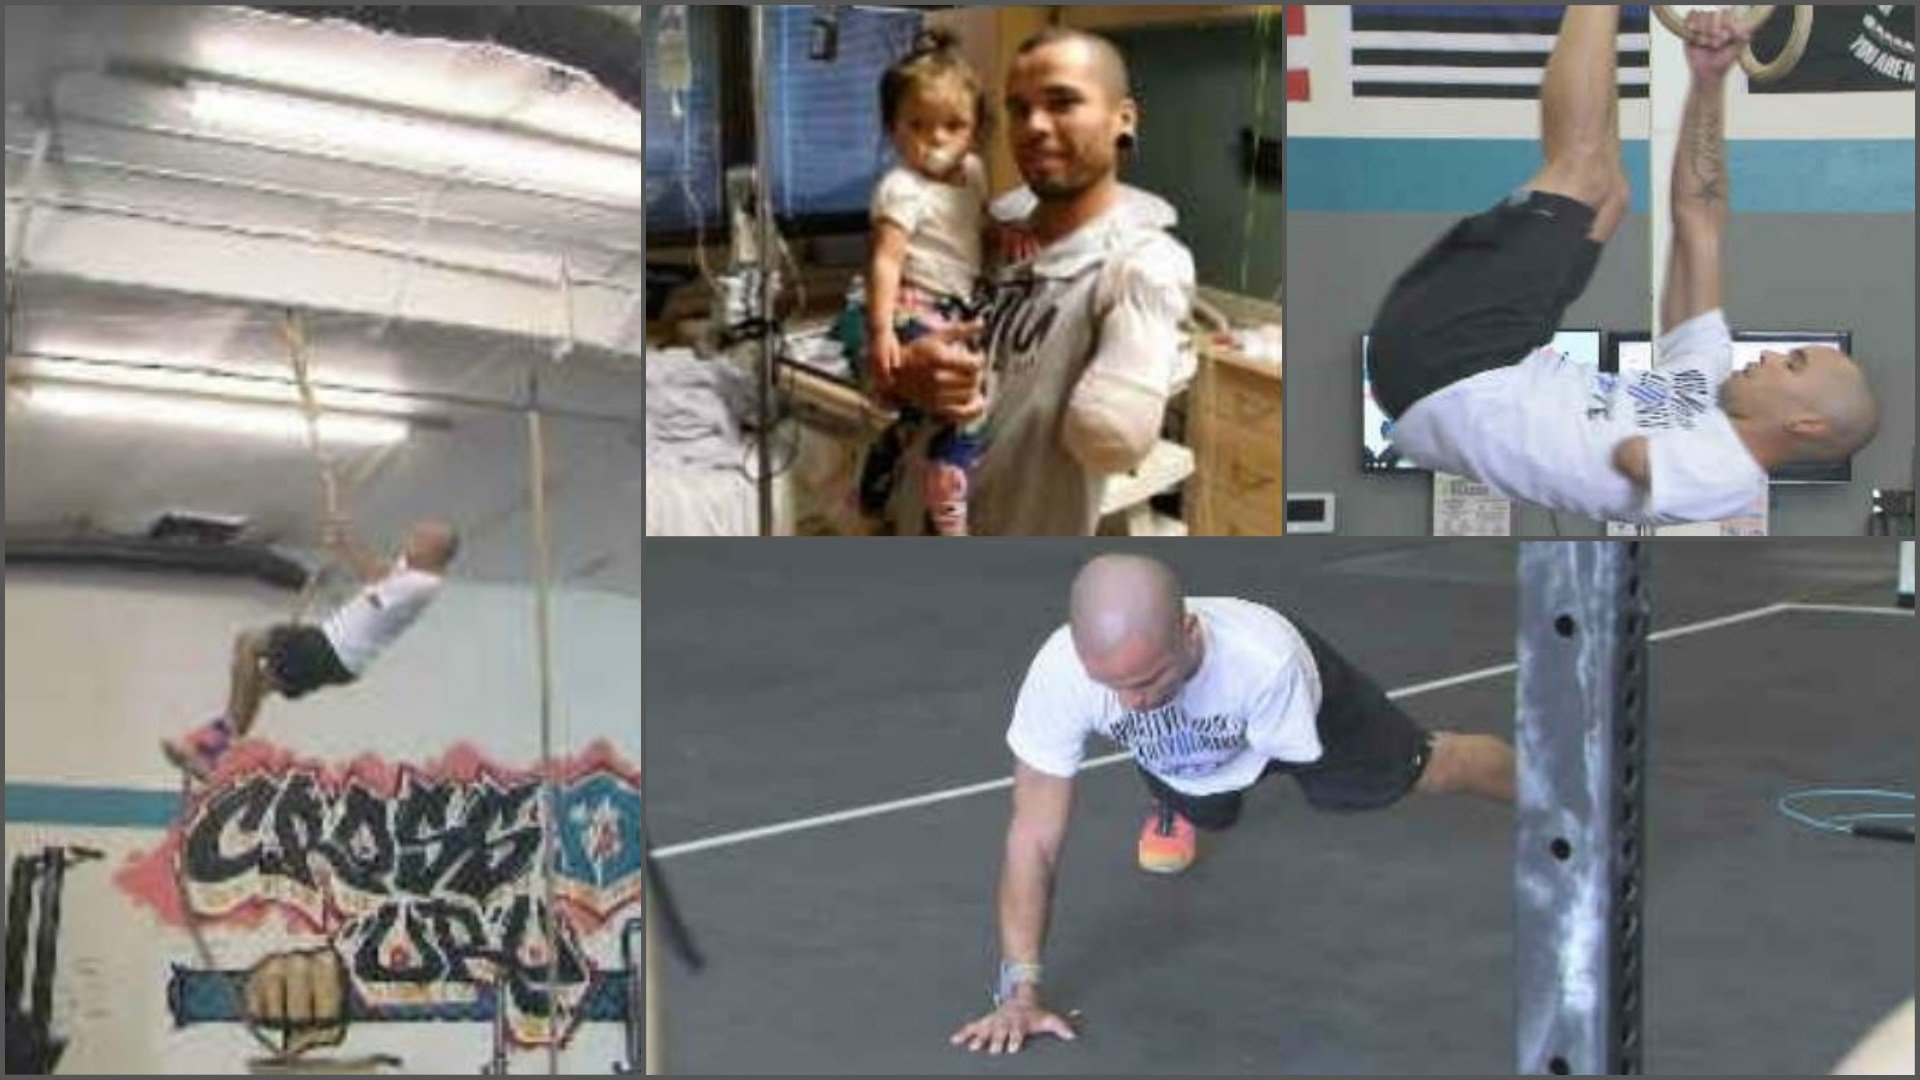 Jeremy Ogle has overcome amputation to become a gold medalist in adaptive CrossFit. (Source: 3TV/CBS 5)